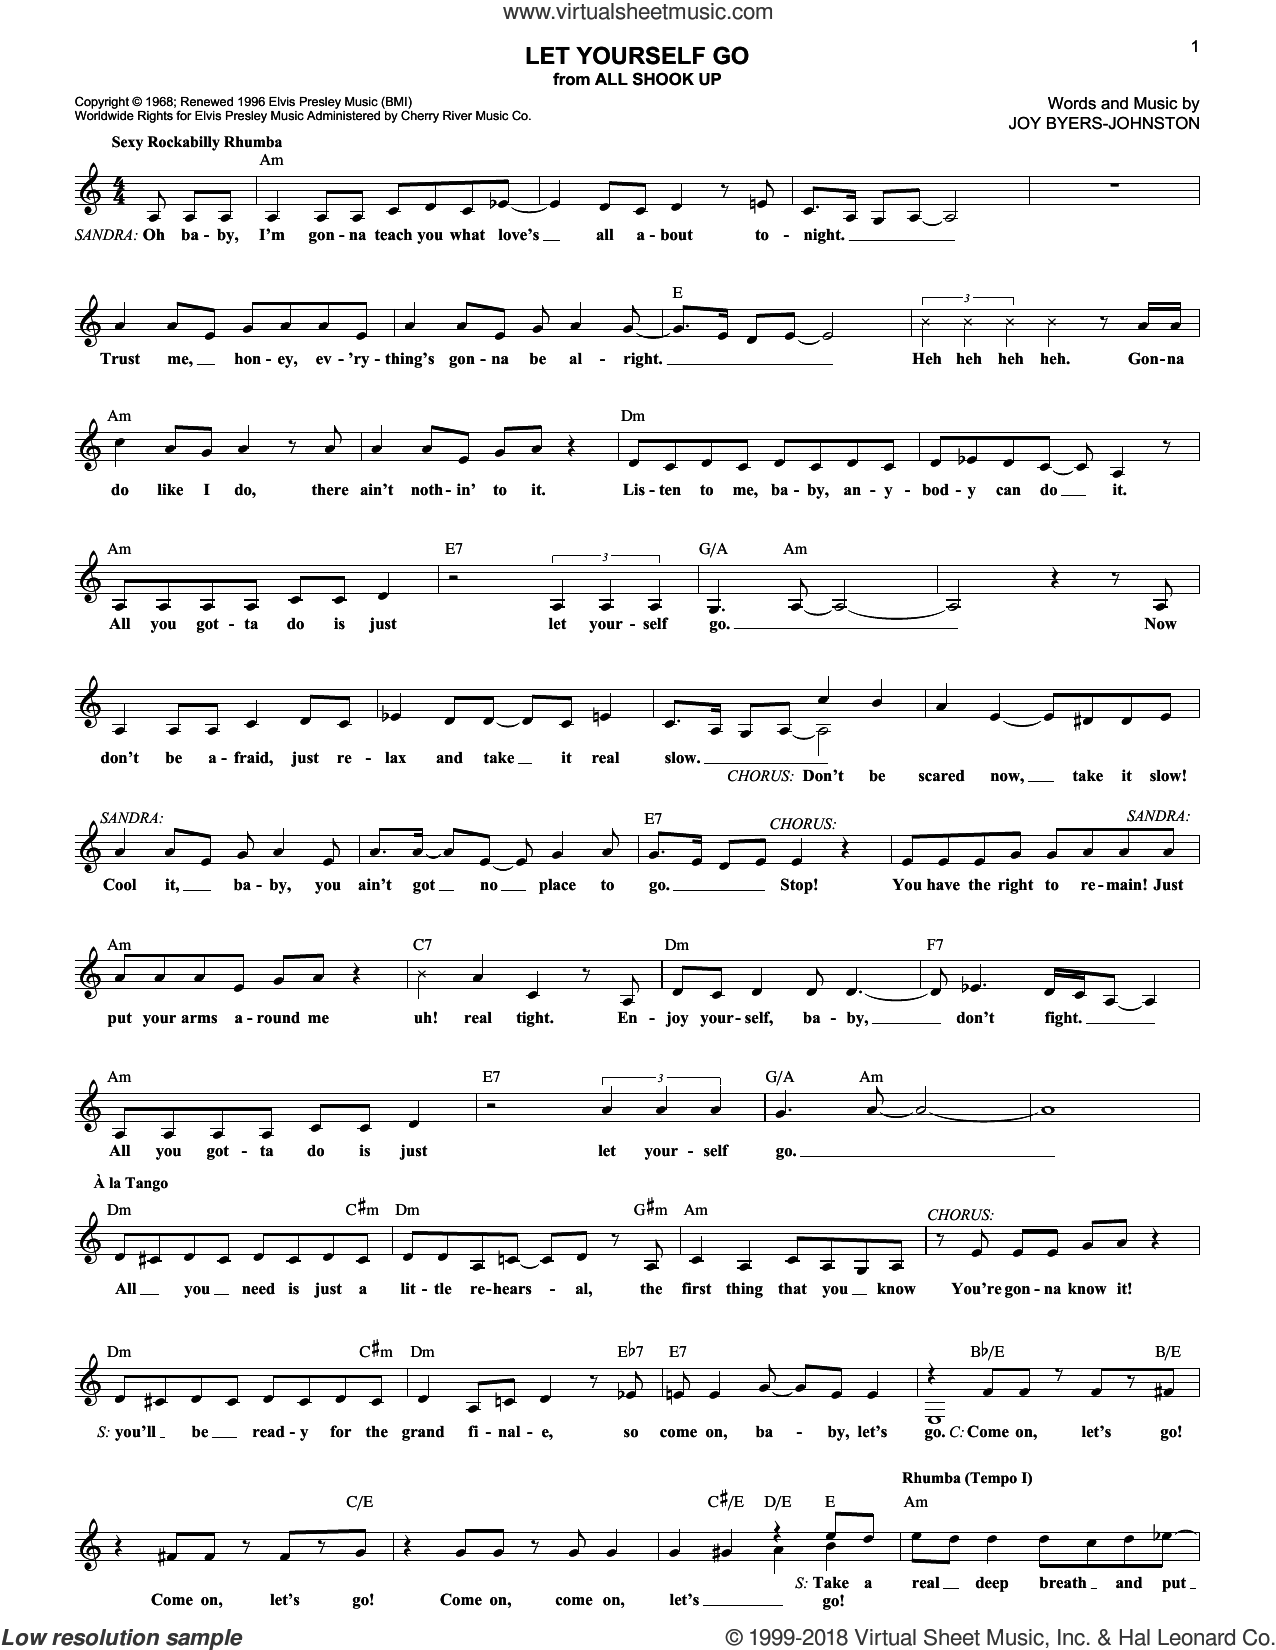 Let Yourself Go sheet music for voice and other instruments (fake book) by Elvis Presley, All Shook Up (Musical) and Joy Byers-Johnston, intermediate skill level